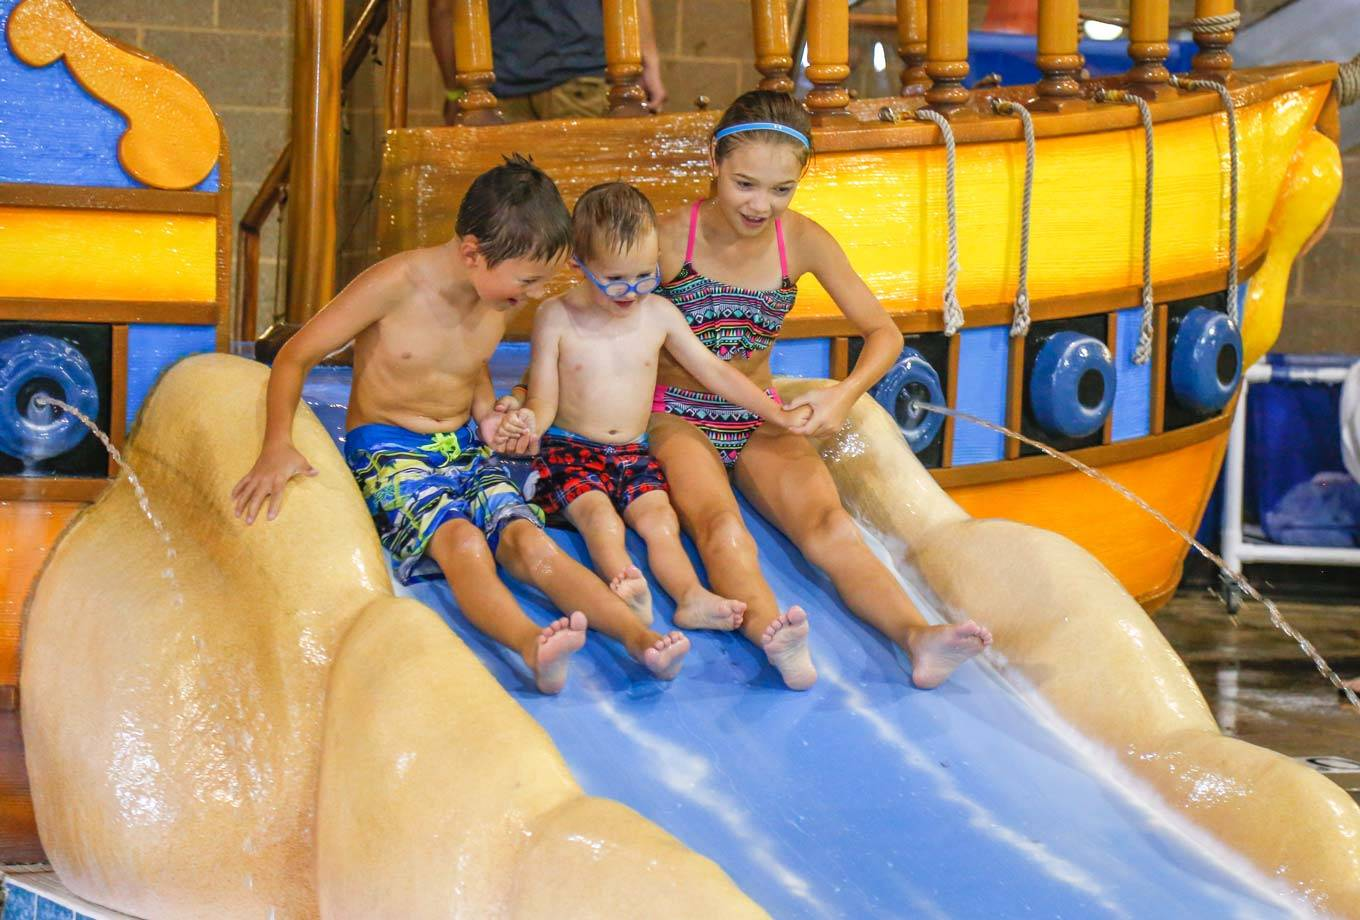 Three kids ready to slide into the water at the indoor water park, Bucanneer Bay, at Honey Creek Resort